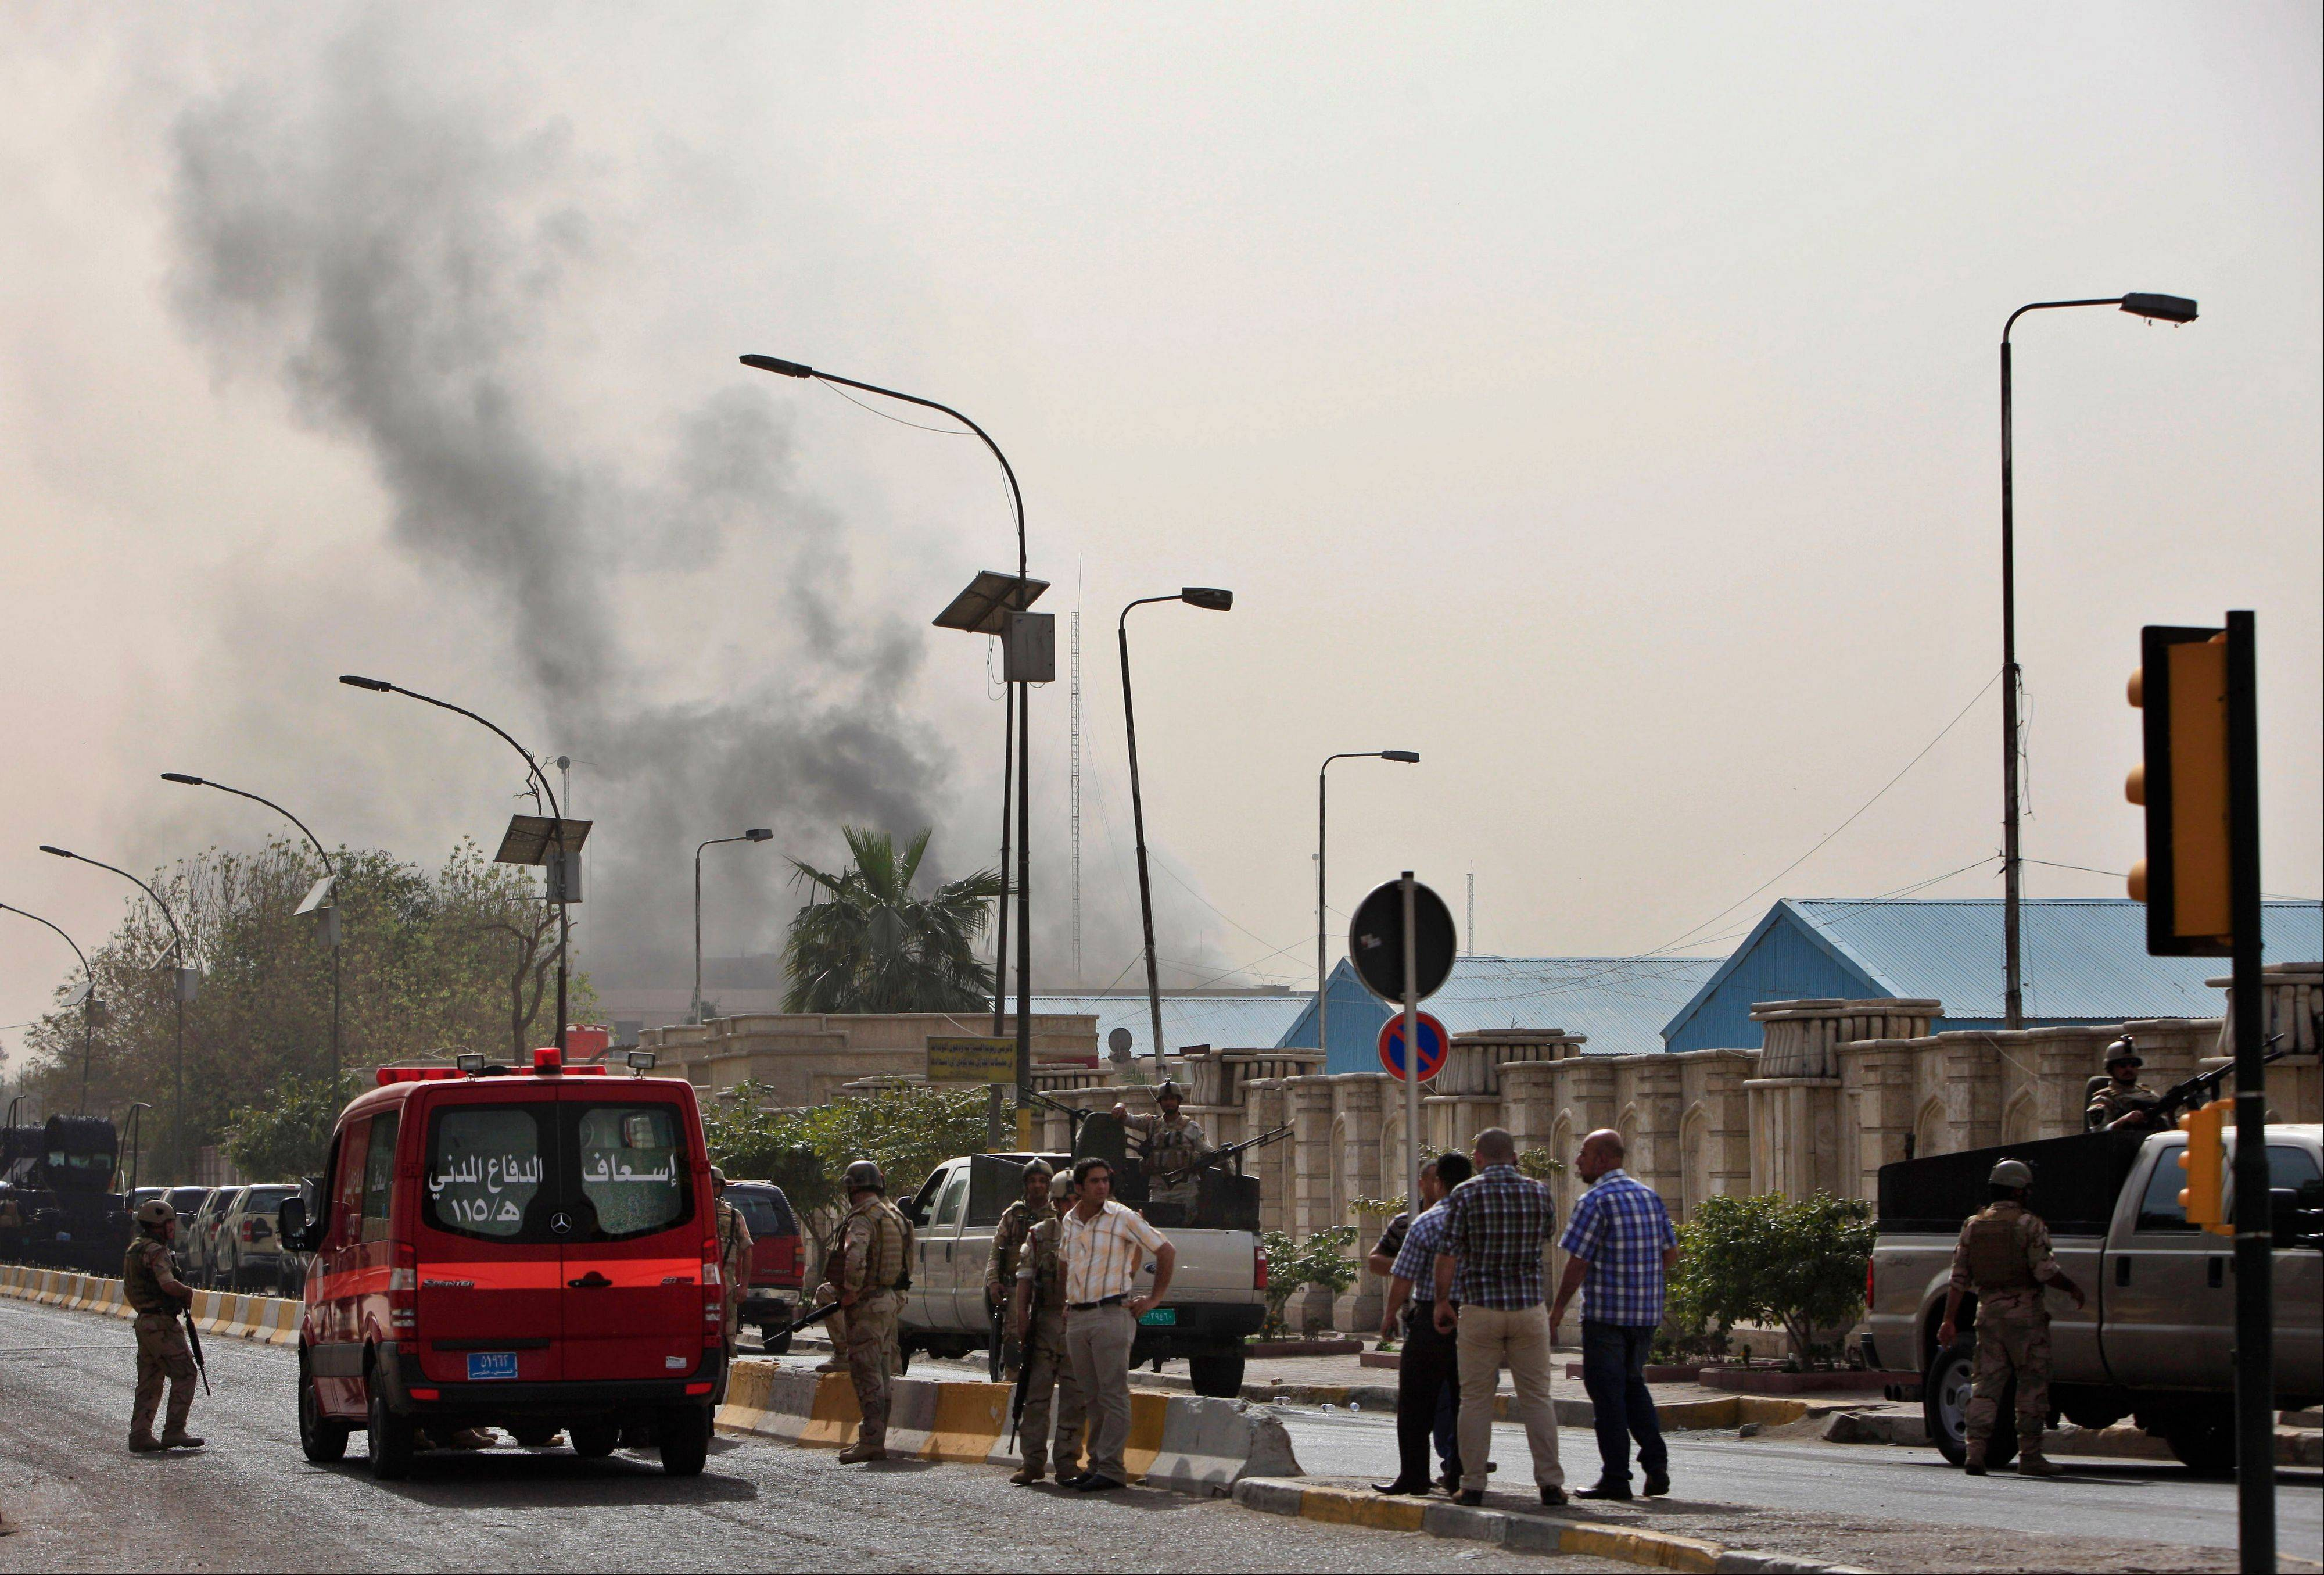 Black smoke from a car bomb attack is seen in Baghdad, Iraq, Thursday, March, 14, 2013. A string of explosions tore through central Baghdad within minutes of each other on Thursday, followed by what appeared to be a coordinated assault by gunmen who battled security forces in the Iraqi capital, according to officials.